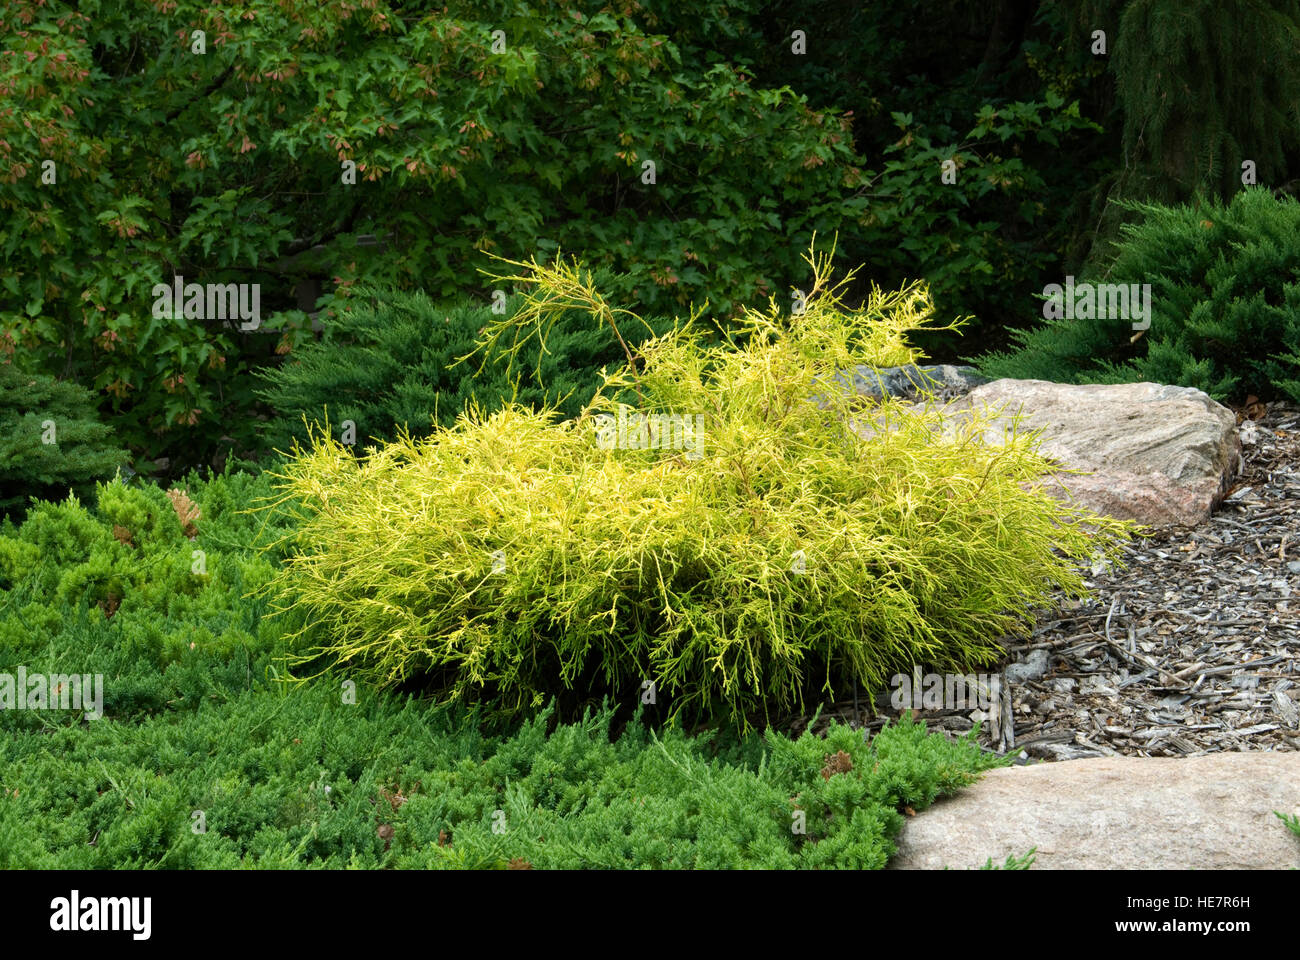 Chamaecyparis pisifera filifera 'Golden Charm' - Stock Image